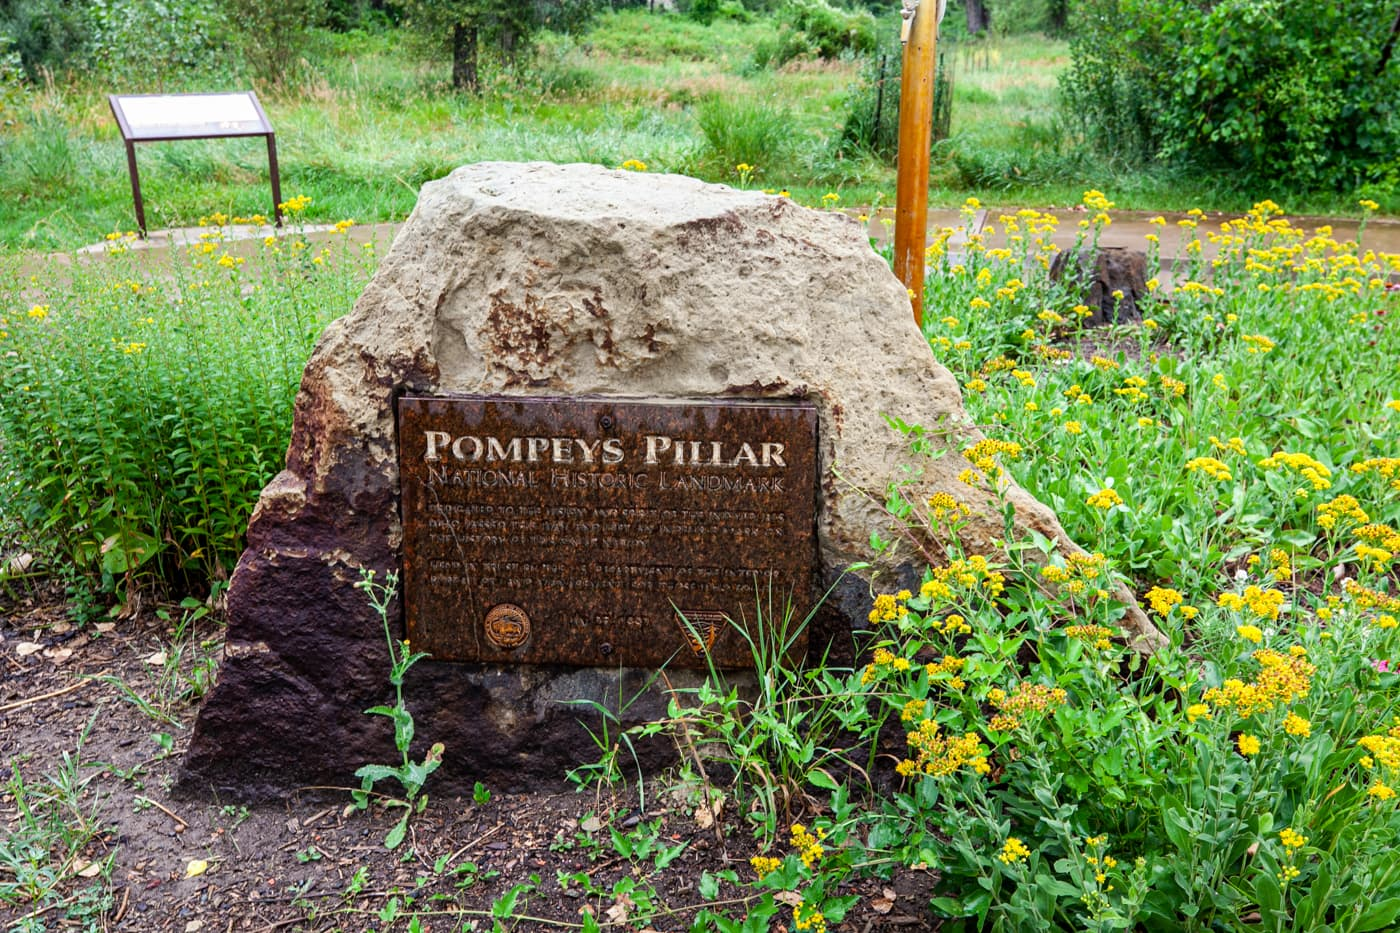 Pompeys Pillar National Monument in Montana | William Clark (Lewis & Clark) carved his name and the date of his visit on a rock bluff next to the Yellowstone River. | Montana tourist attractions and historical monuments